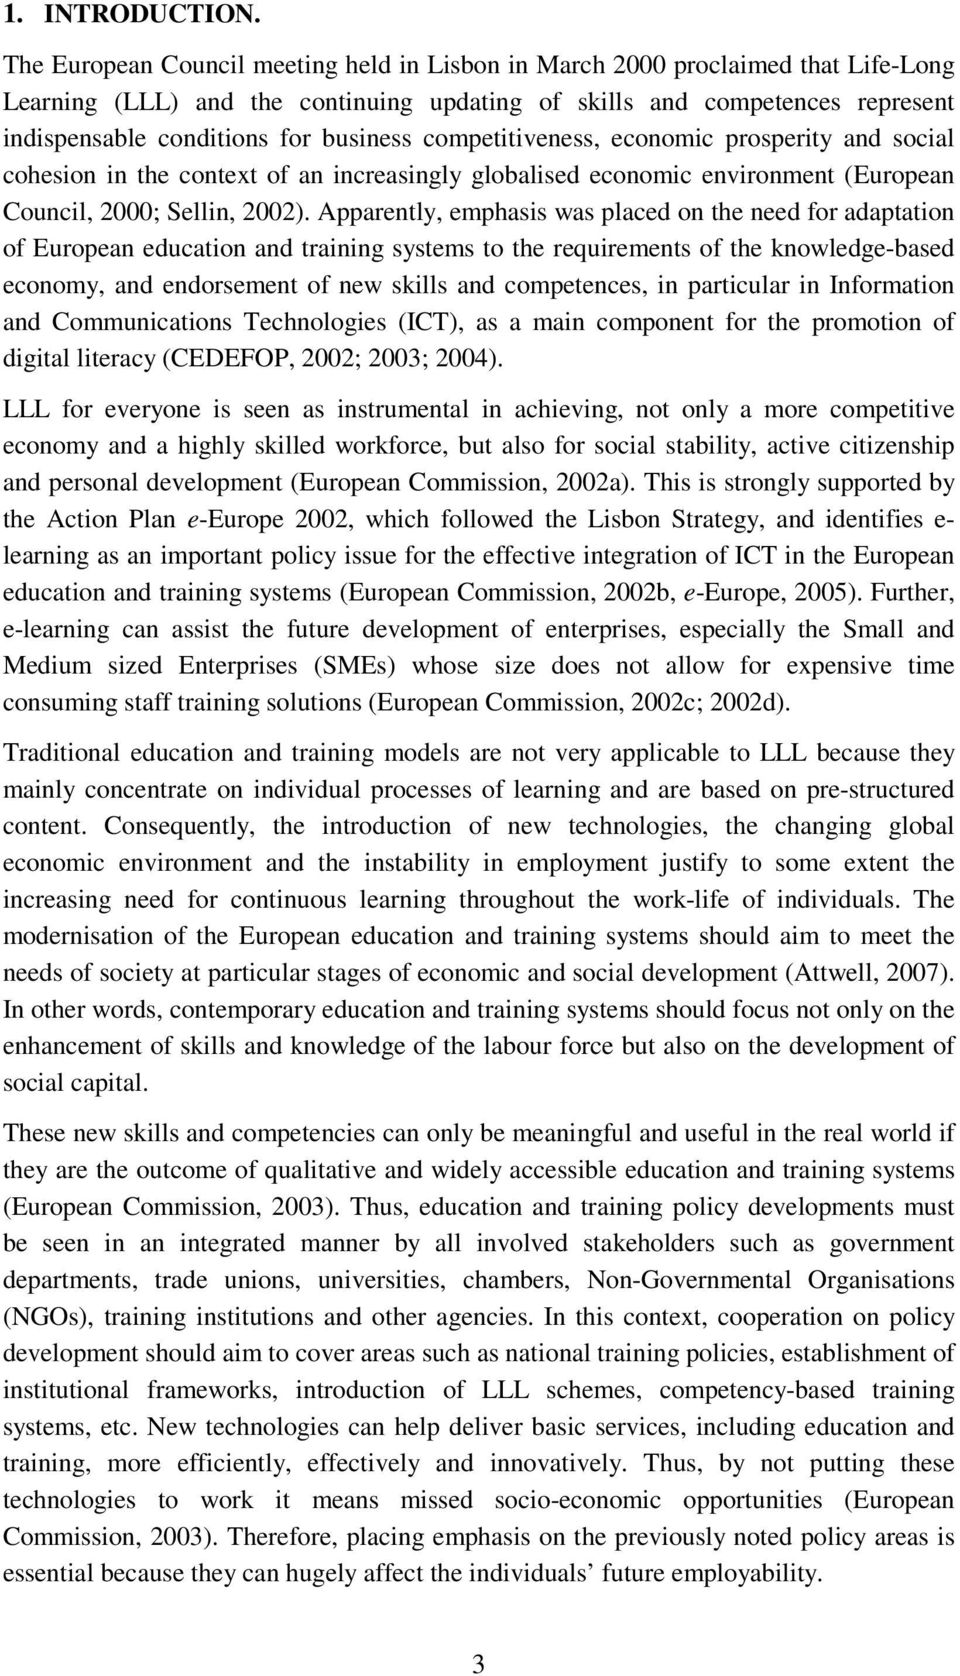 business competitiveness, economic prosperity and social cohesion in the context of an increasingly globalised economic environment (European Council, 2000; Sellin, 2002).